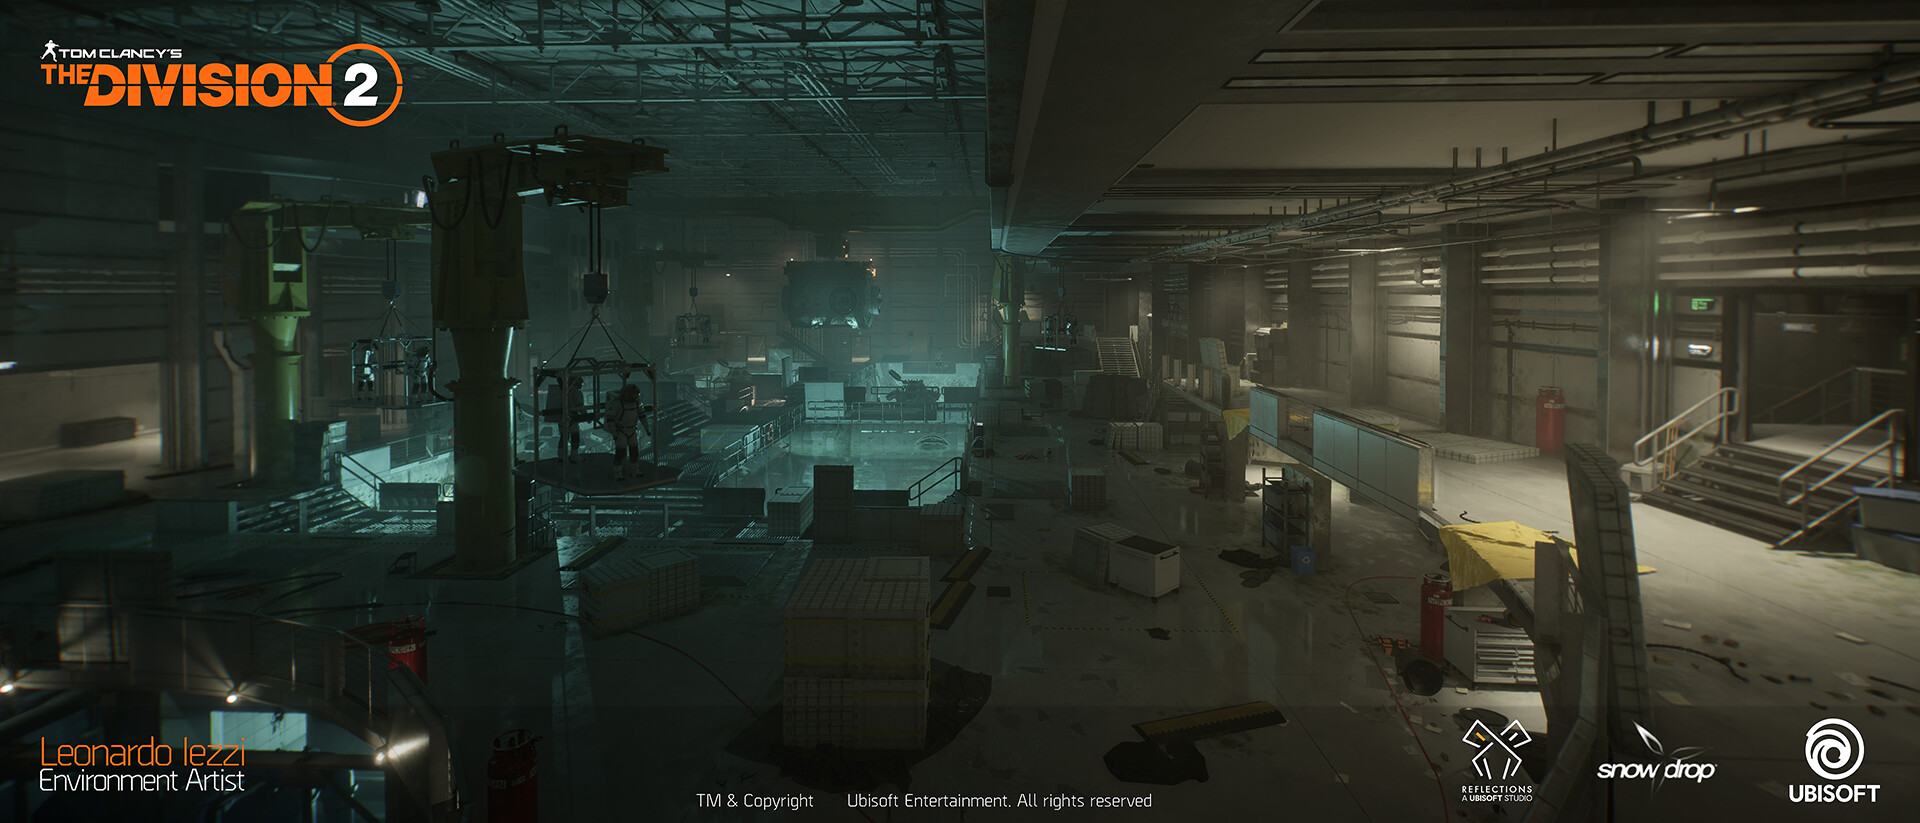 Leonardo iezzi leonardo iezzi the division 2 environment art 06 buoyancy 021 wide